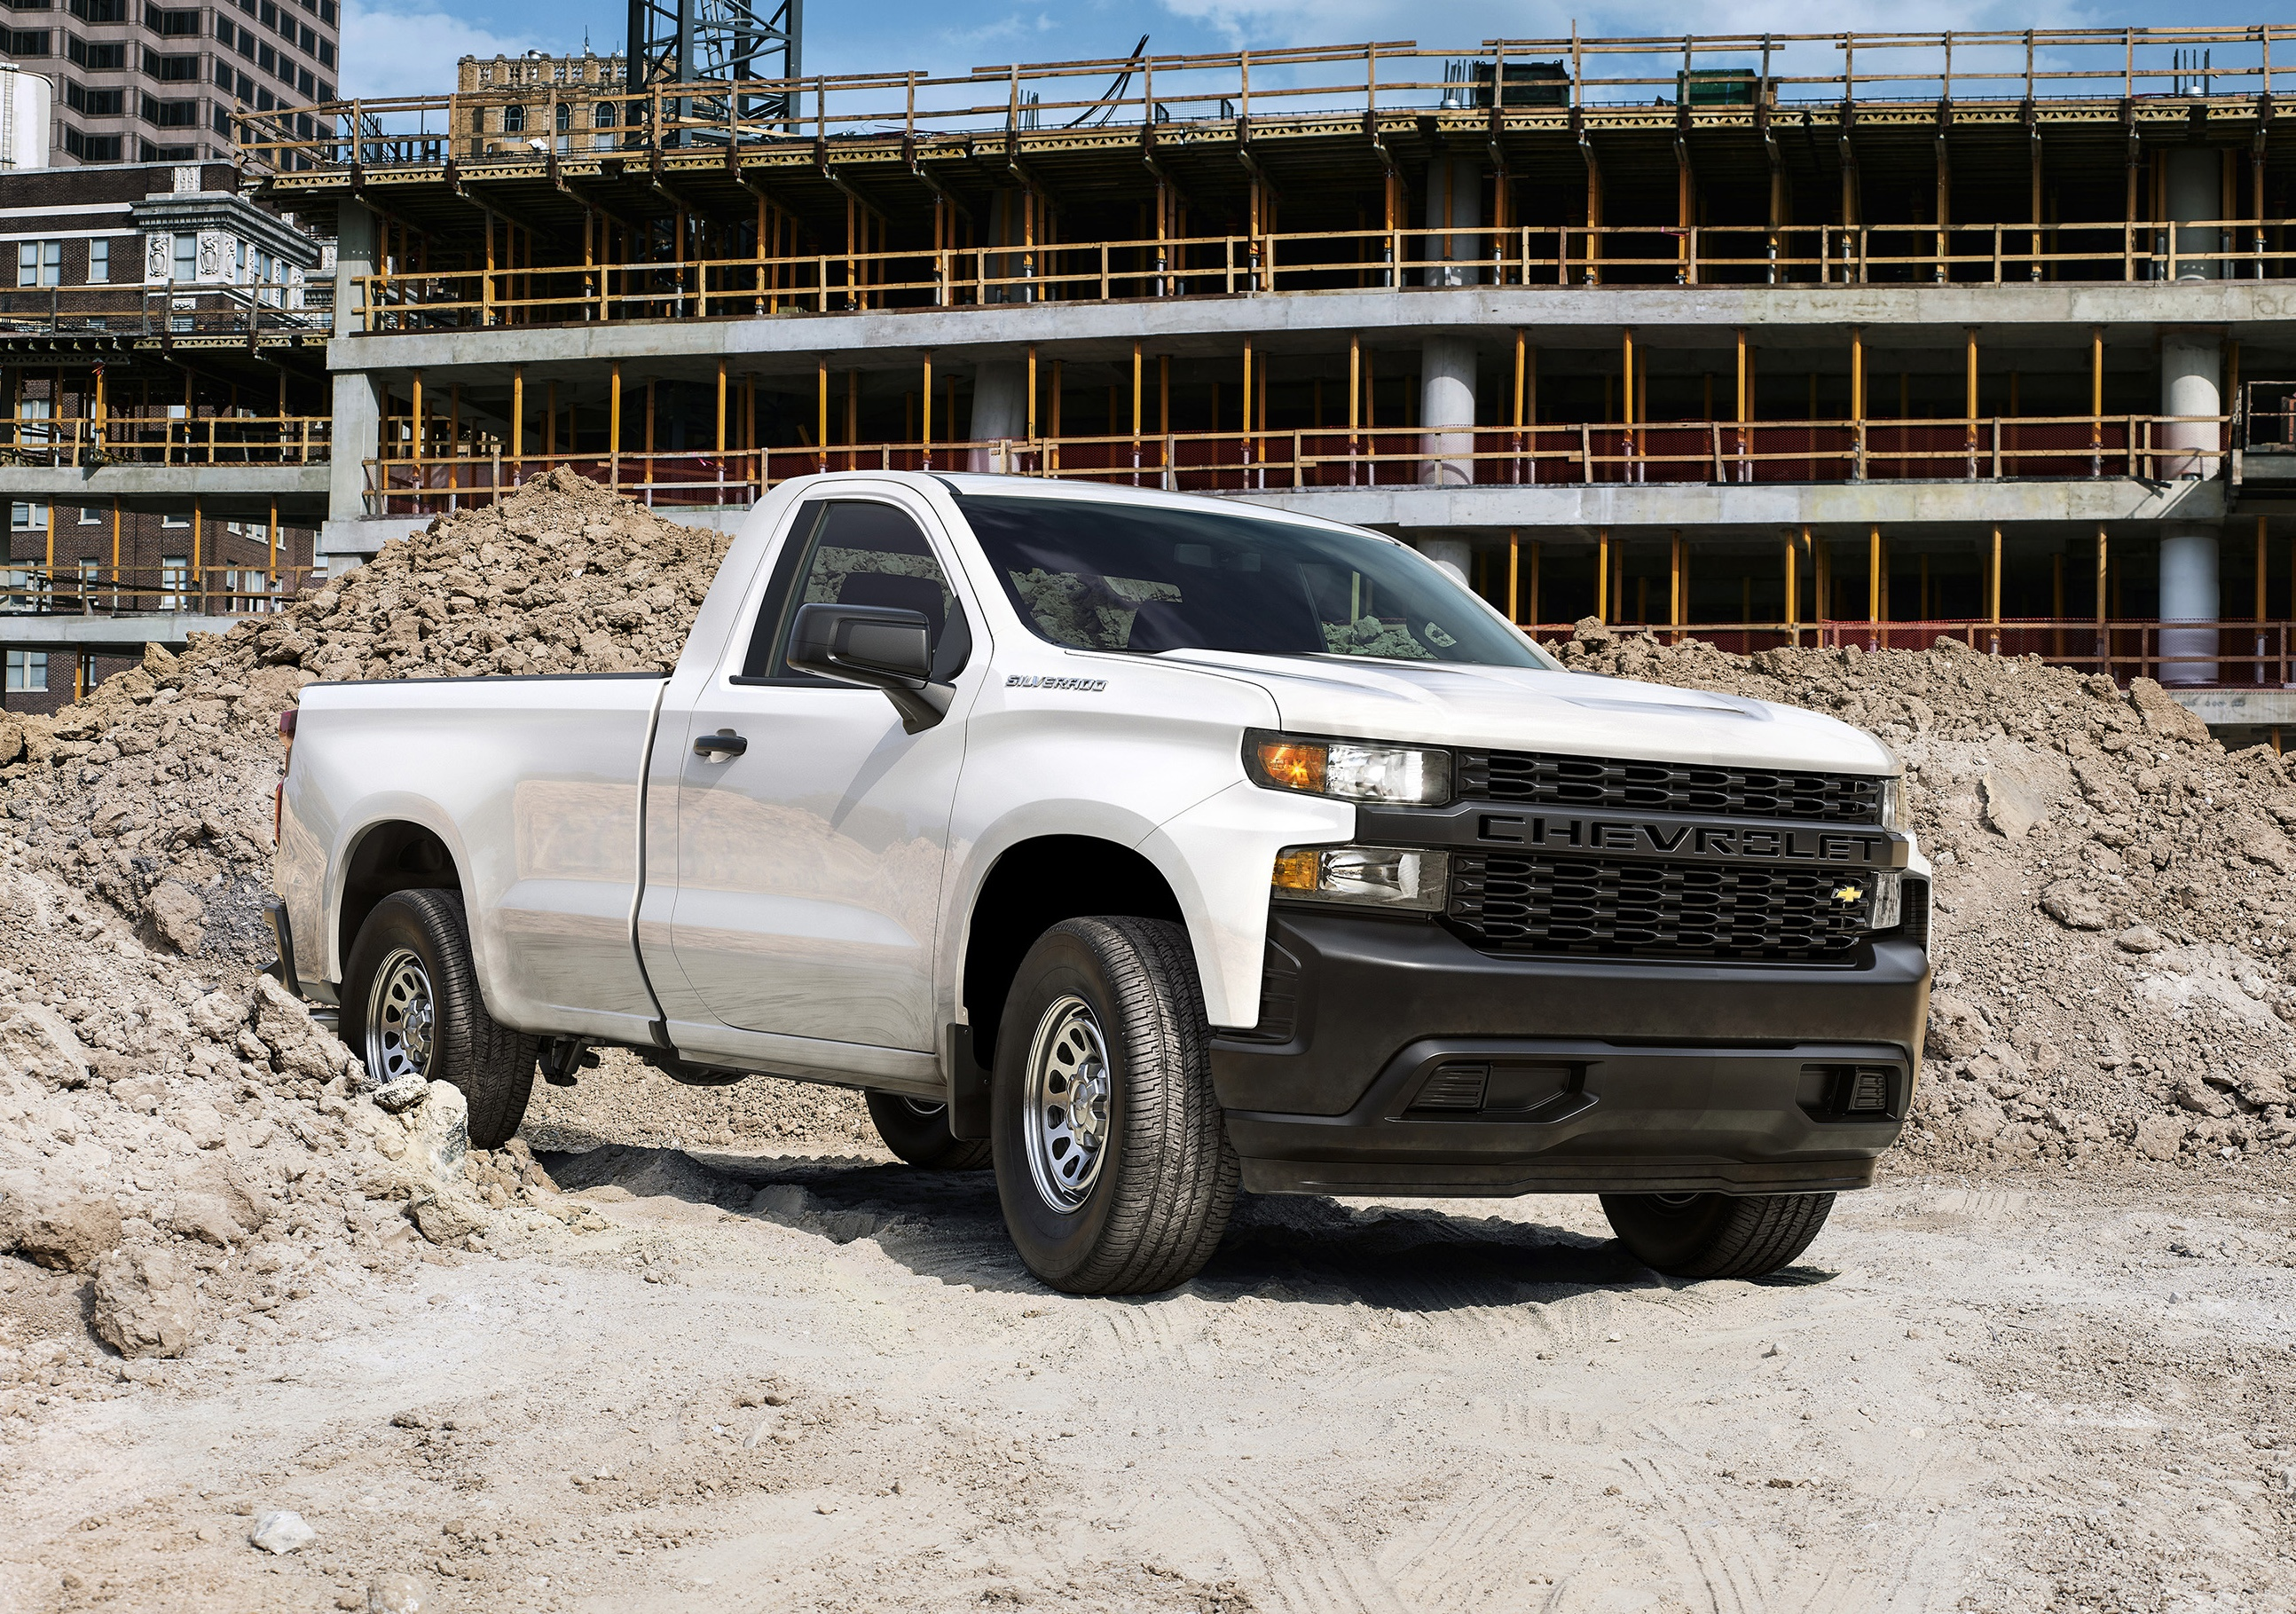 Chevy Build And Price >> 2019 Chevy Silverado Trim Levels All The Details You Need